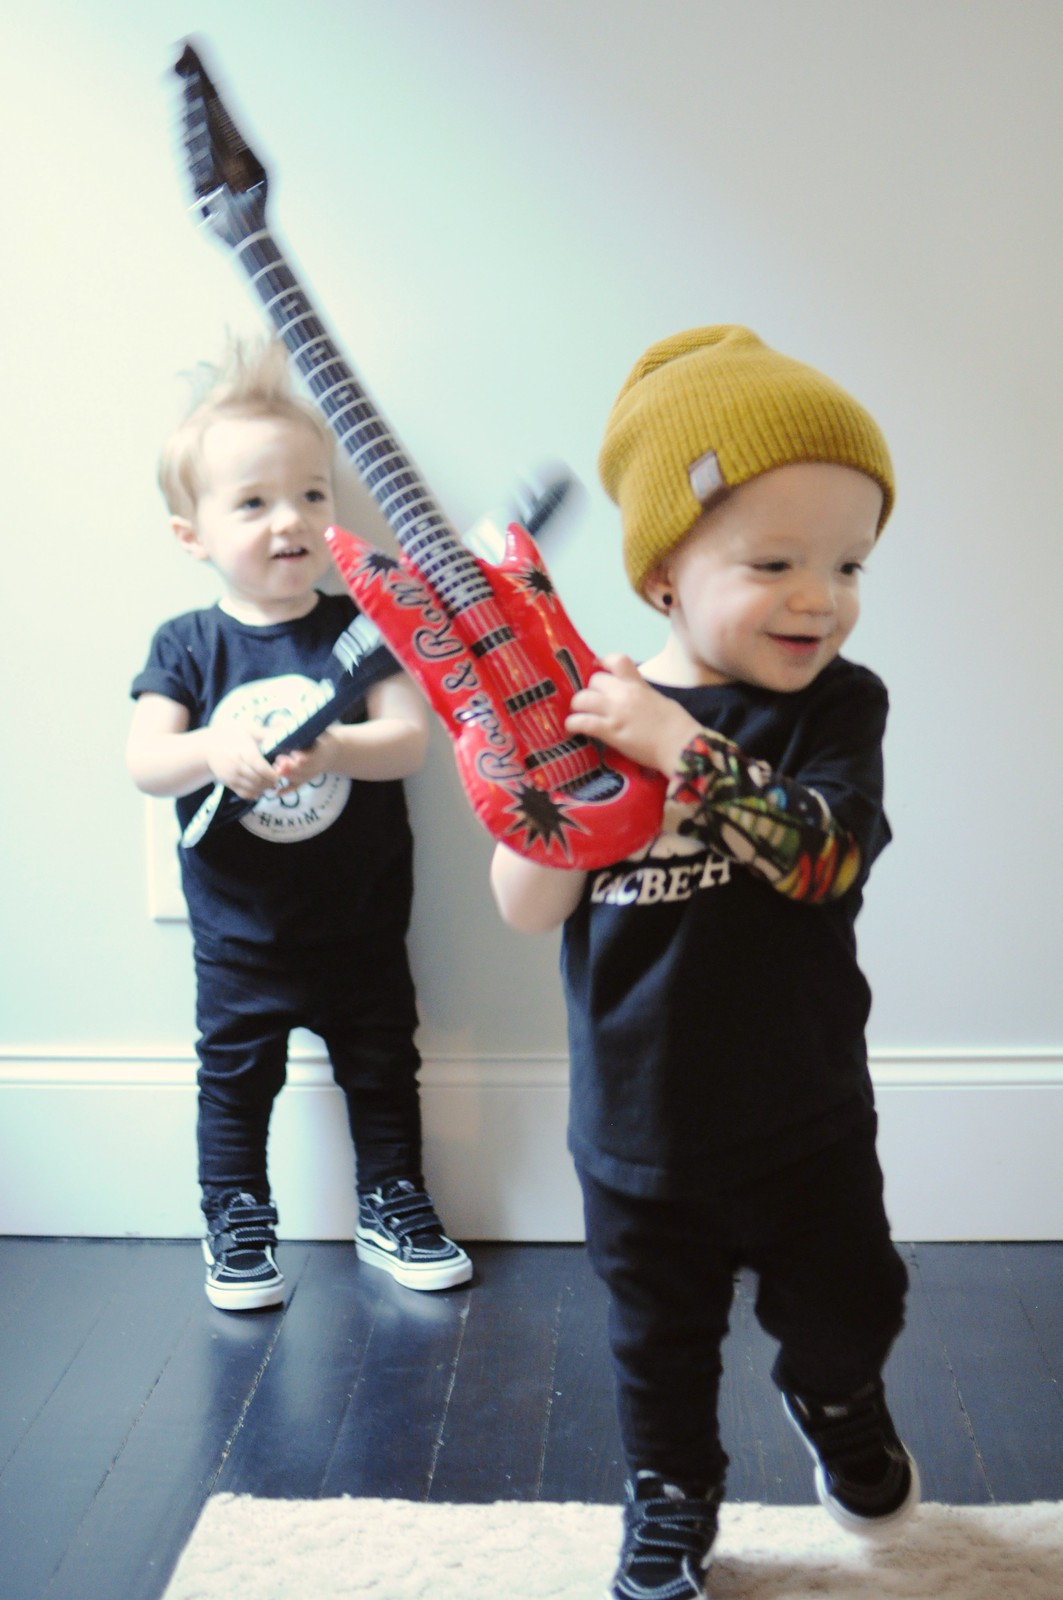 The Brothers May as Blink-182